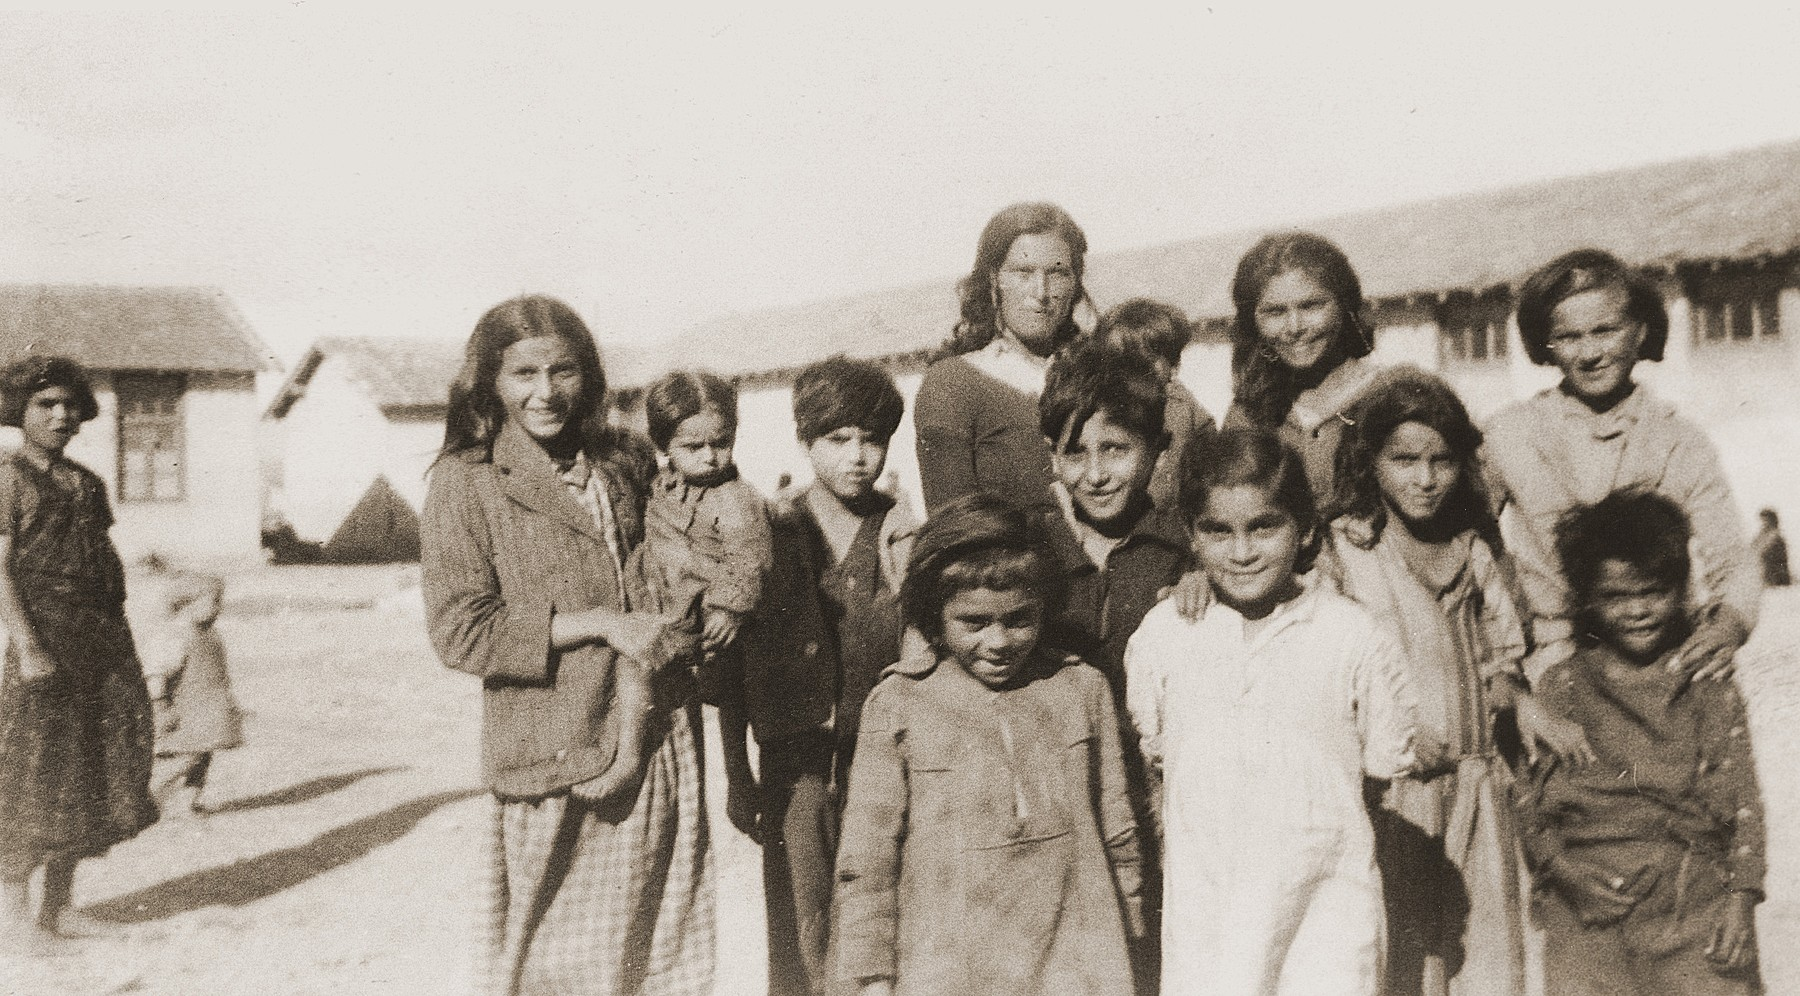 Alsacian Romani (Gypsy) women and children in the Rivesaltes detention camp.